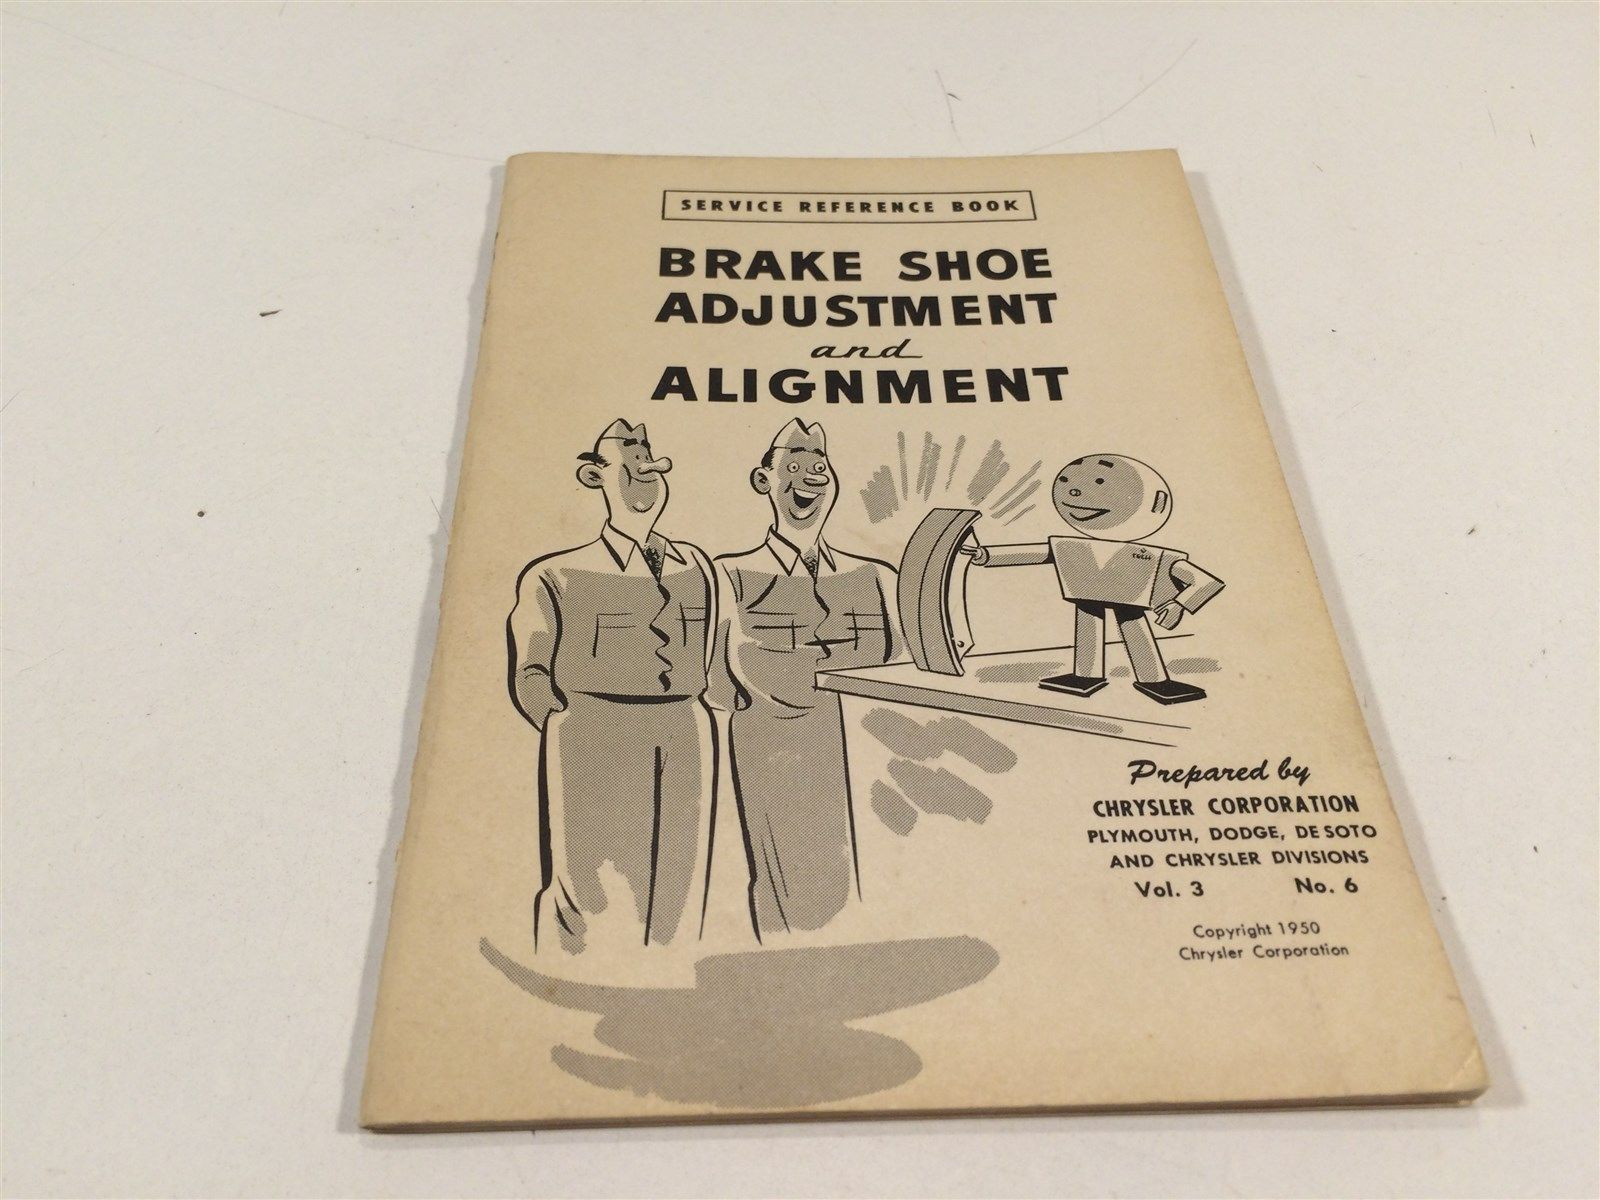 1950 Chrysler Corporation Service Reference Book V 3 No 6 Brake Shoe Adjustment